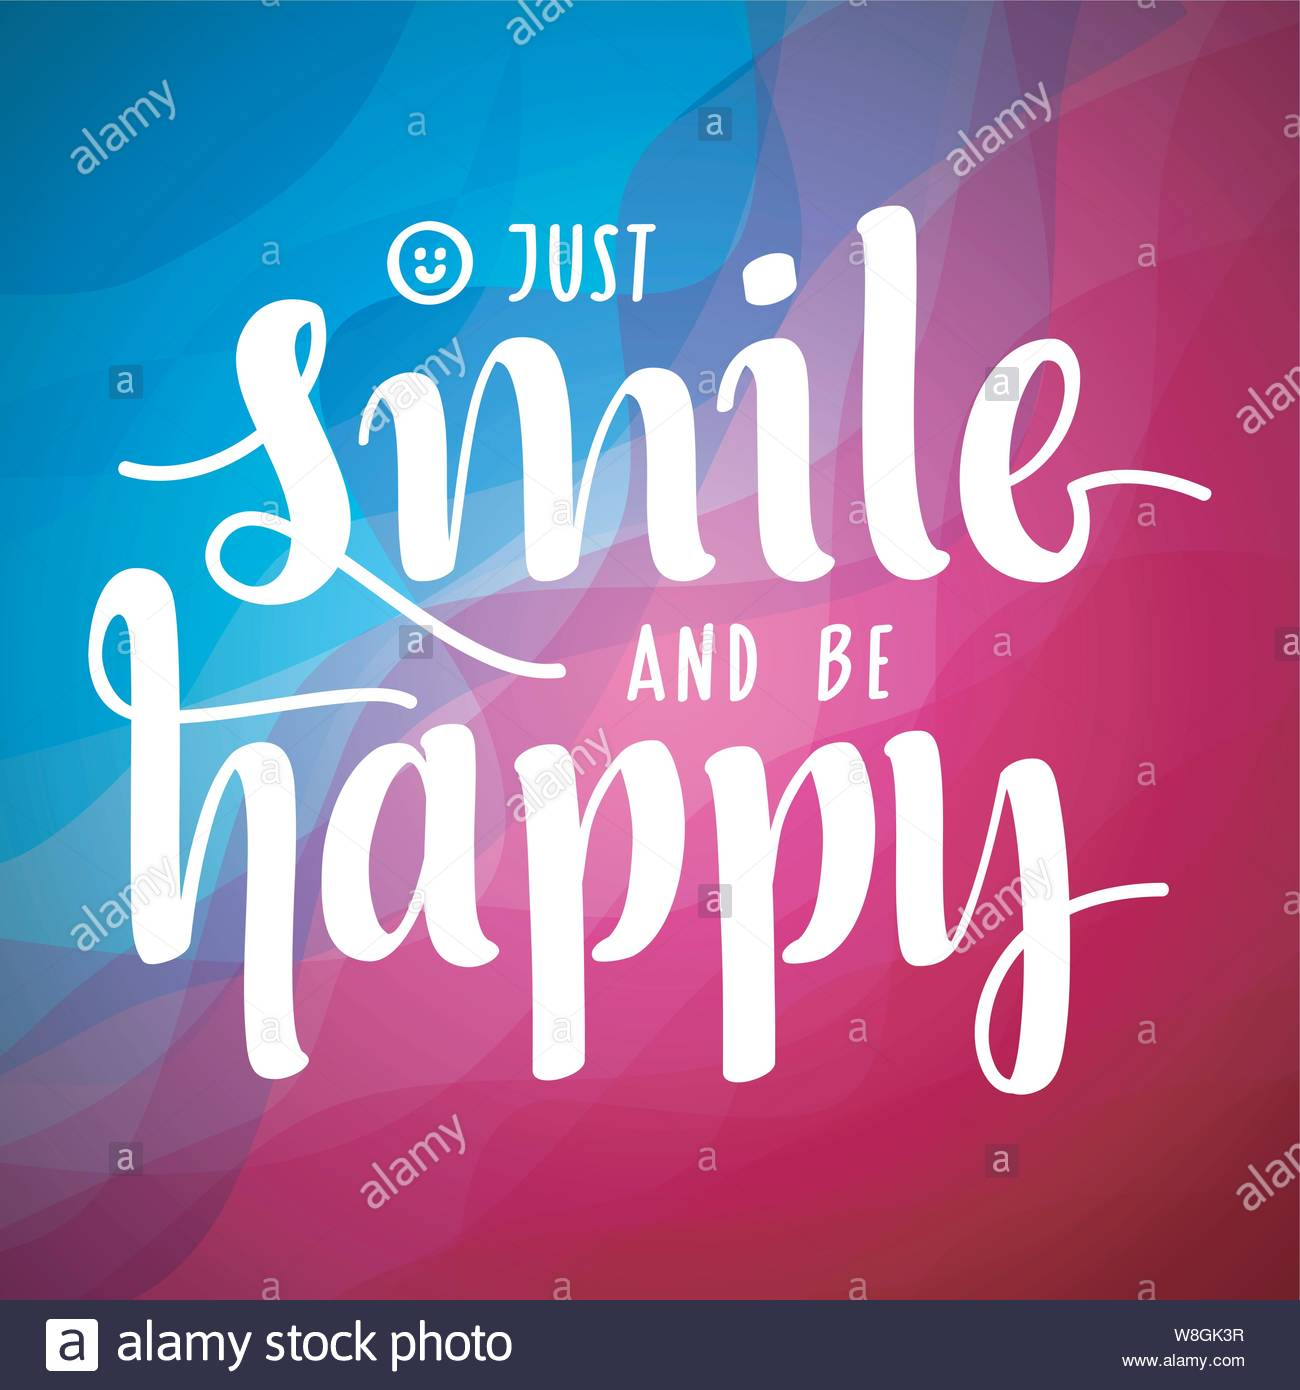 Just Smile And Be Happy Inspirational Quotes And ...